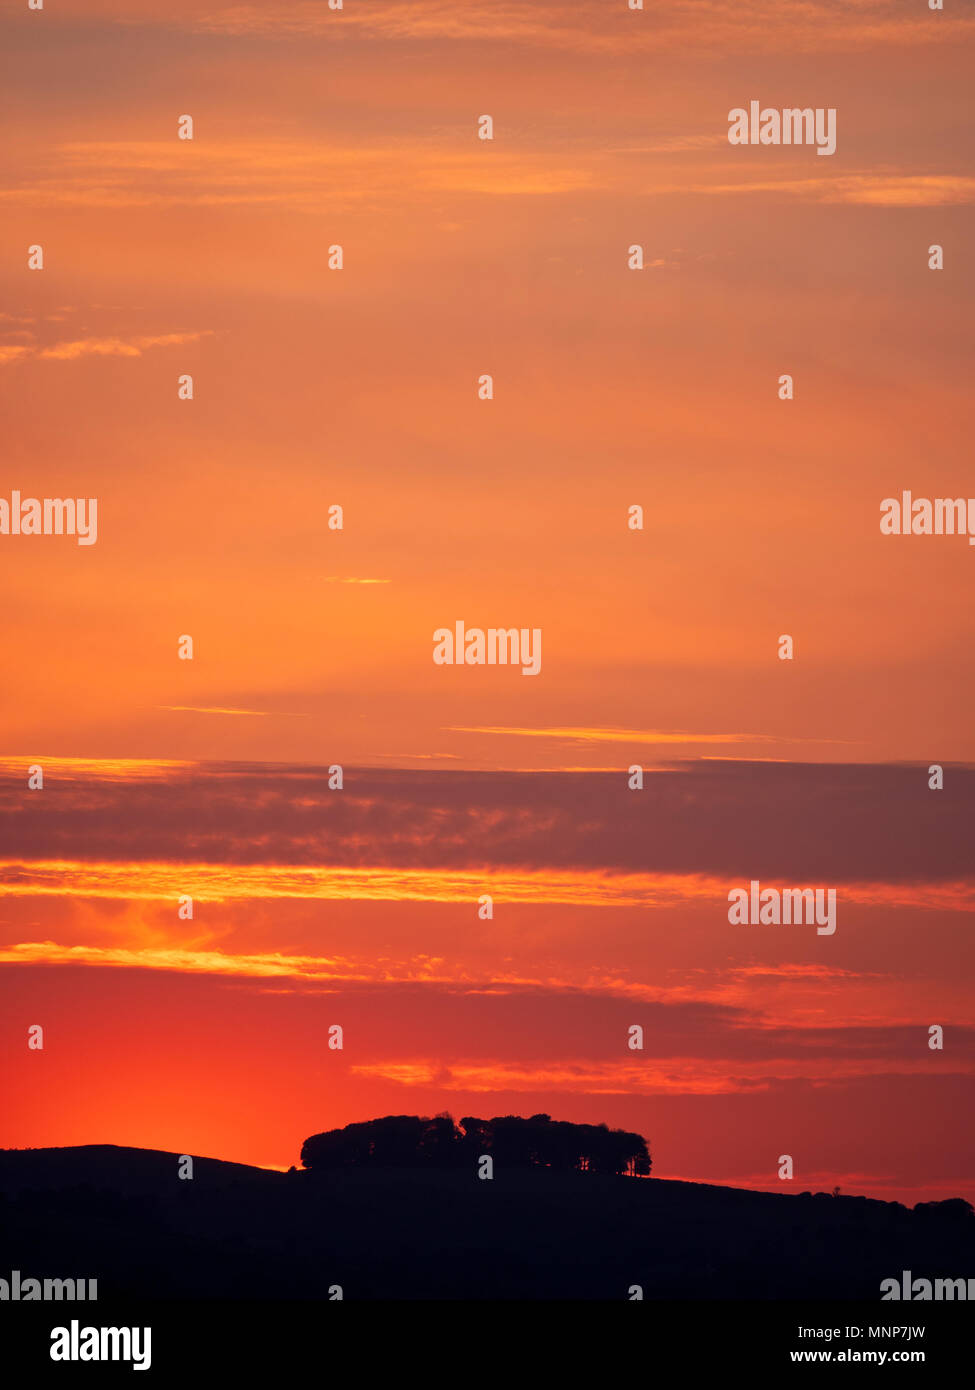 Peak District, Derbyshire, UK. 18th May, 2018. UK Weather: spectacular sunset over the ancient woods Hazleton Clump Cairn near Thorpe taken from Ashbourne Derbyshire, Peak District National Park Credit: Doug Blane/Alamy Live NewsStock Photo